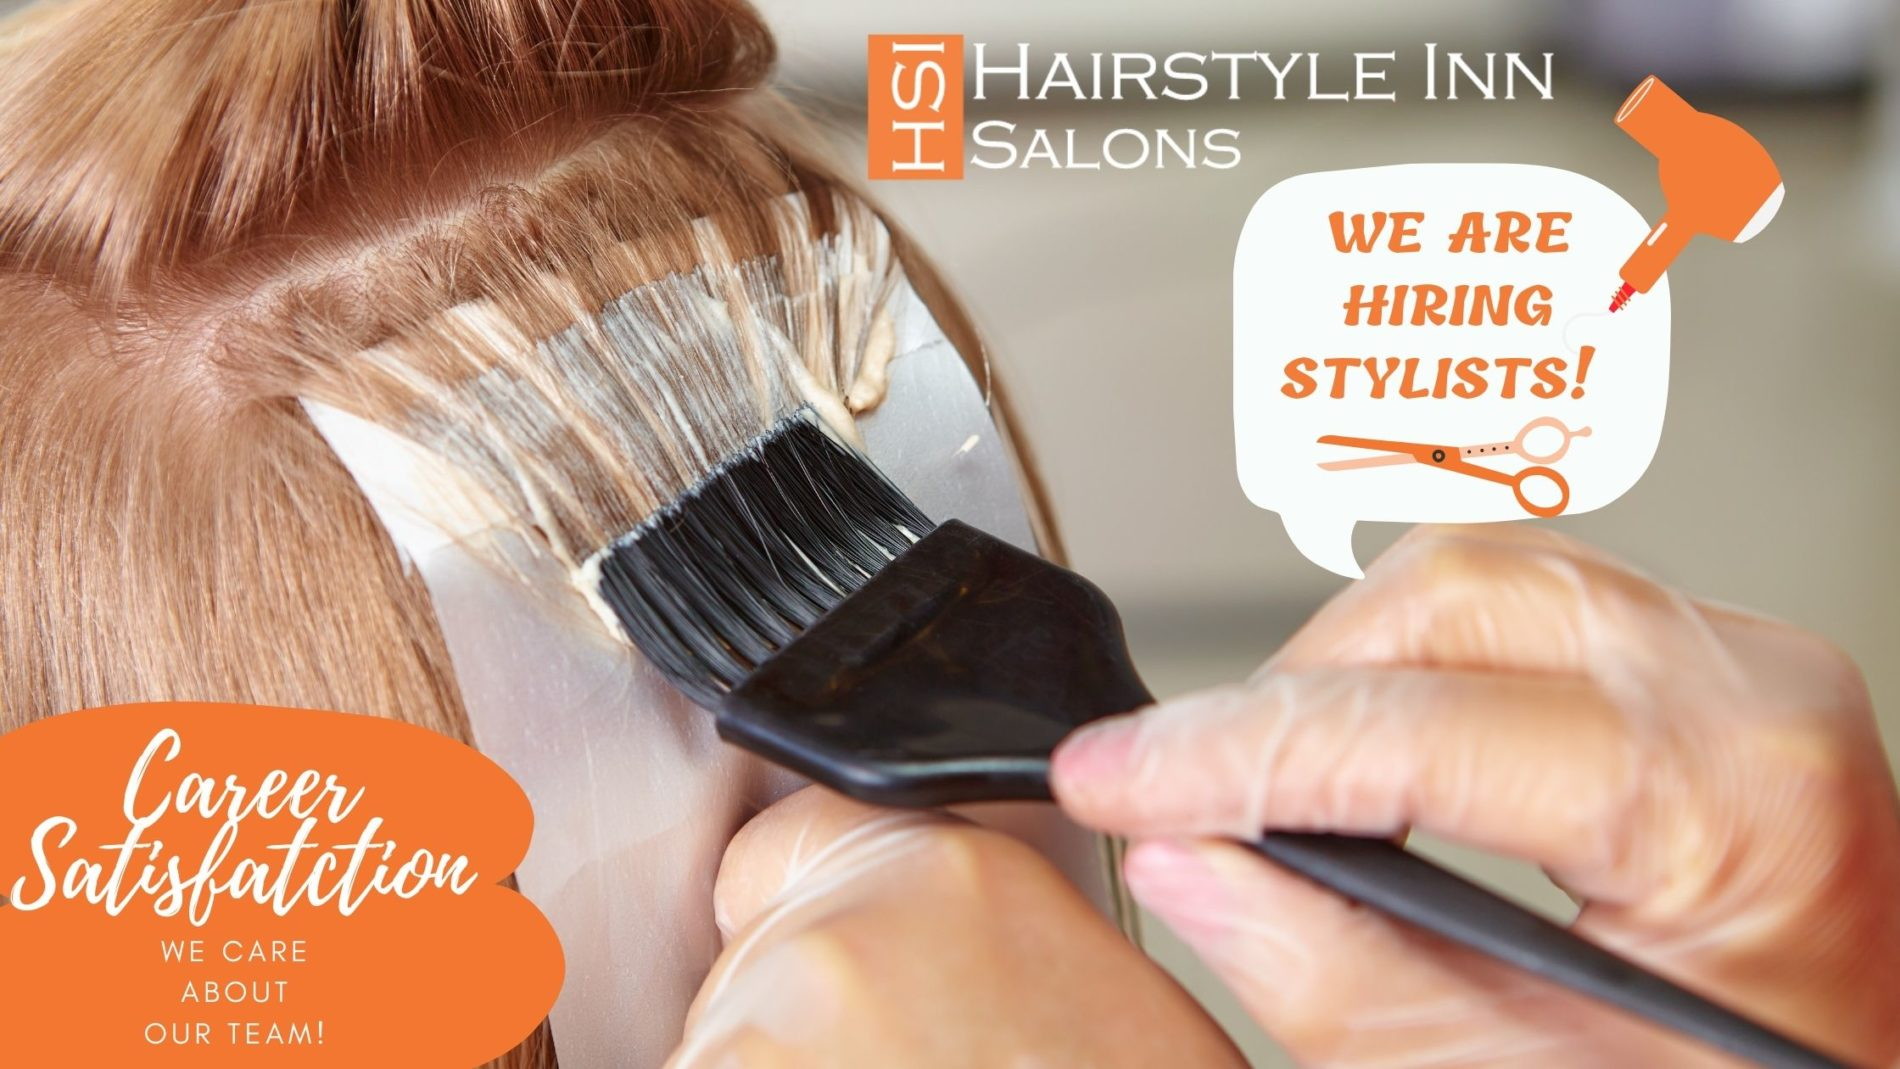 Hairstyle Inn Hiring Stylists At Our Two Saskatoon Salon Locations